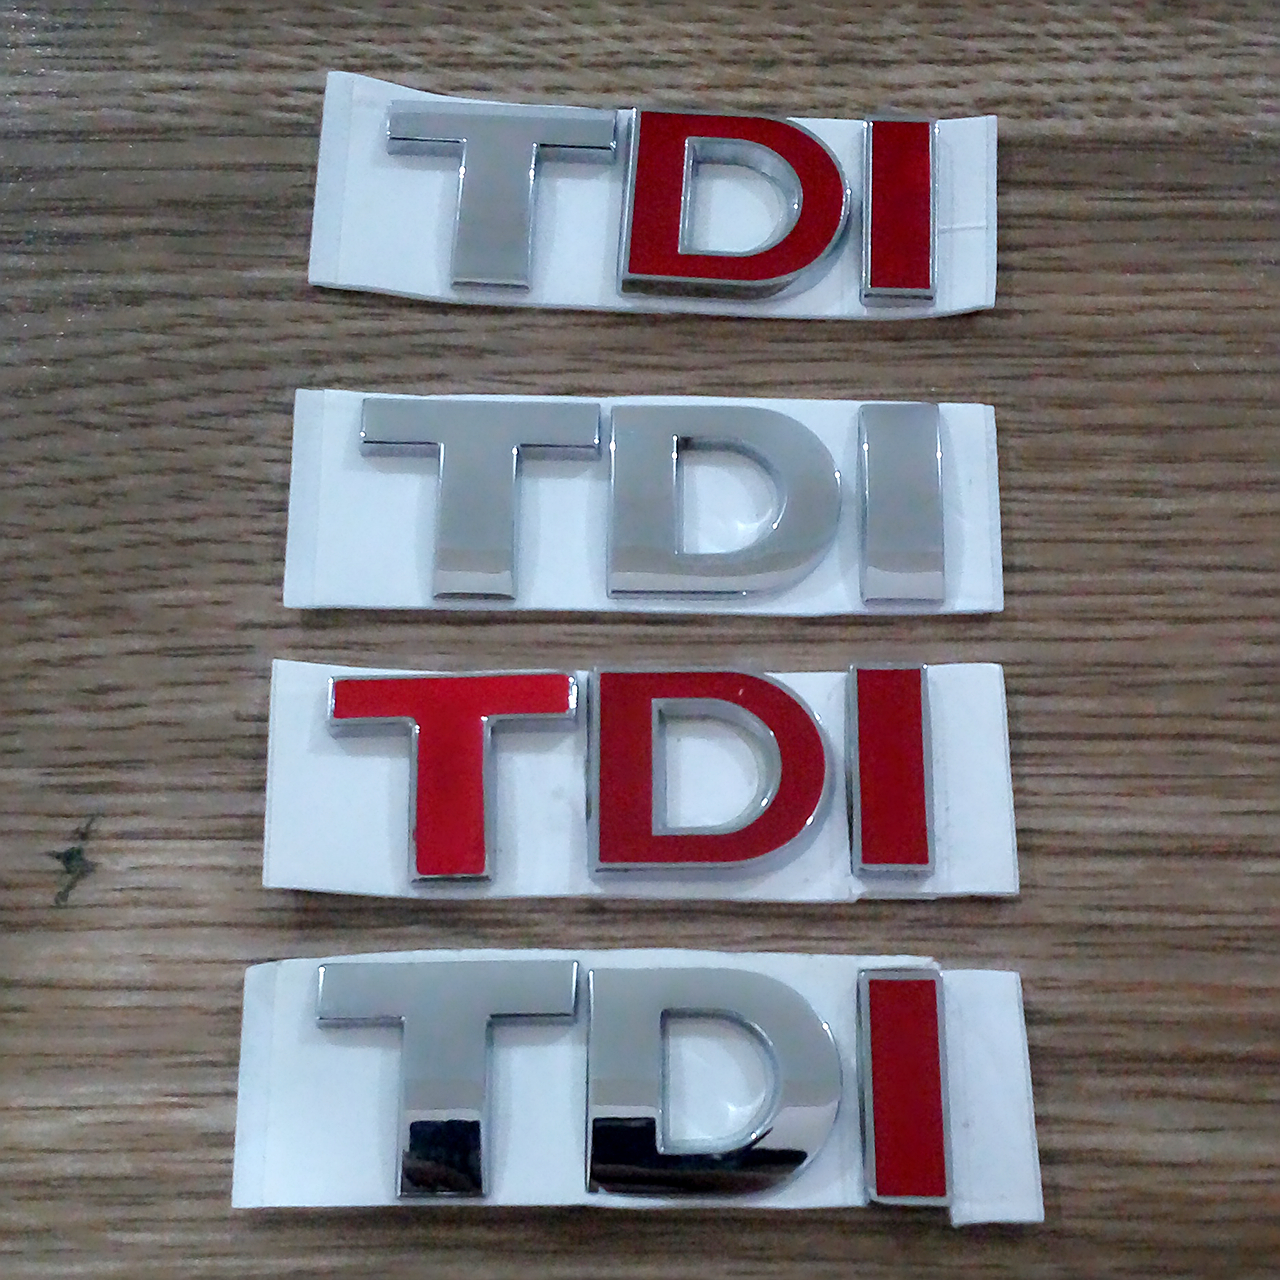 CAR-STYLING TDI GTI Badge Emblem Decal Sticker Logo VW for VW Skoda Golf JETTA PASSAT MK4 MK5 MK6 Car styling car accessories 2015 high quality spaceship building blocks compatible with lego star war ship fighter scale model bricks toys christmas gift